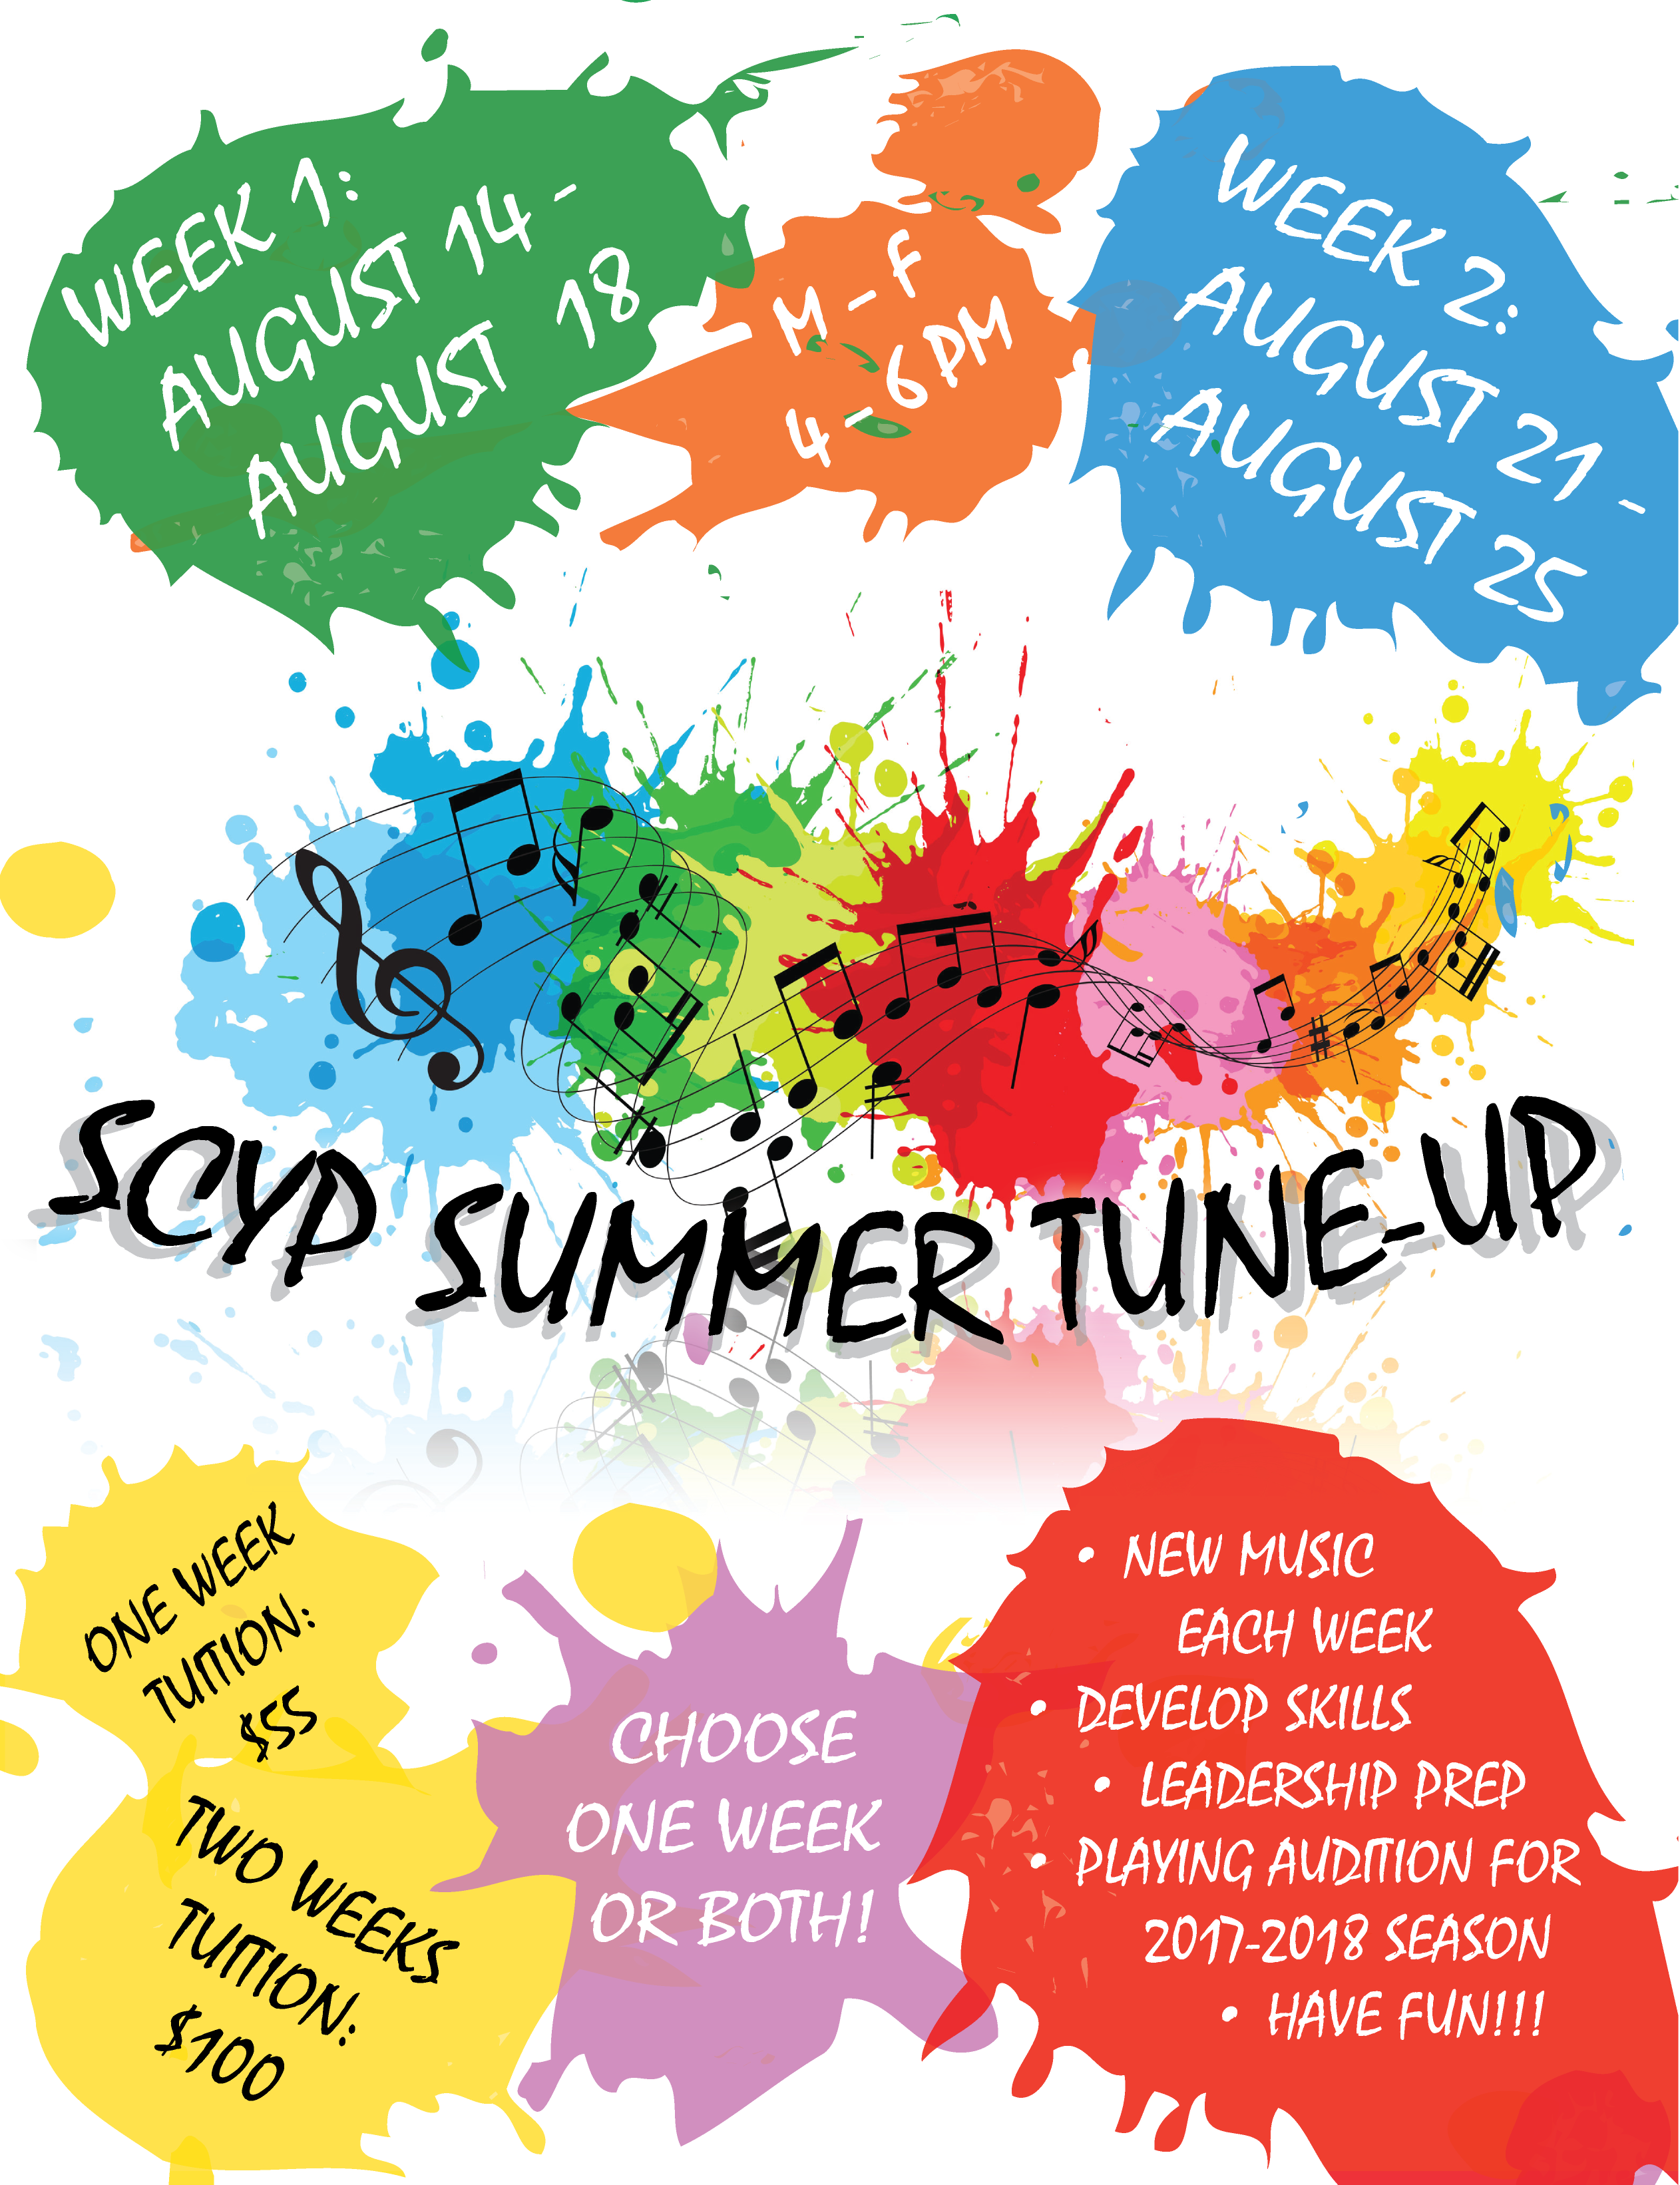 Summer Tune-Up Flyer